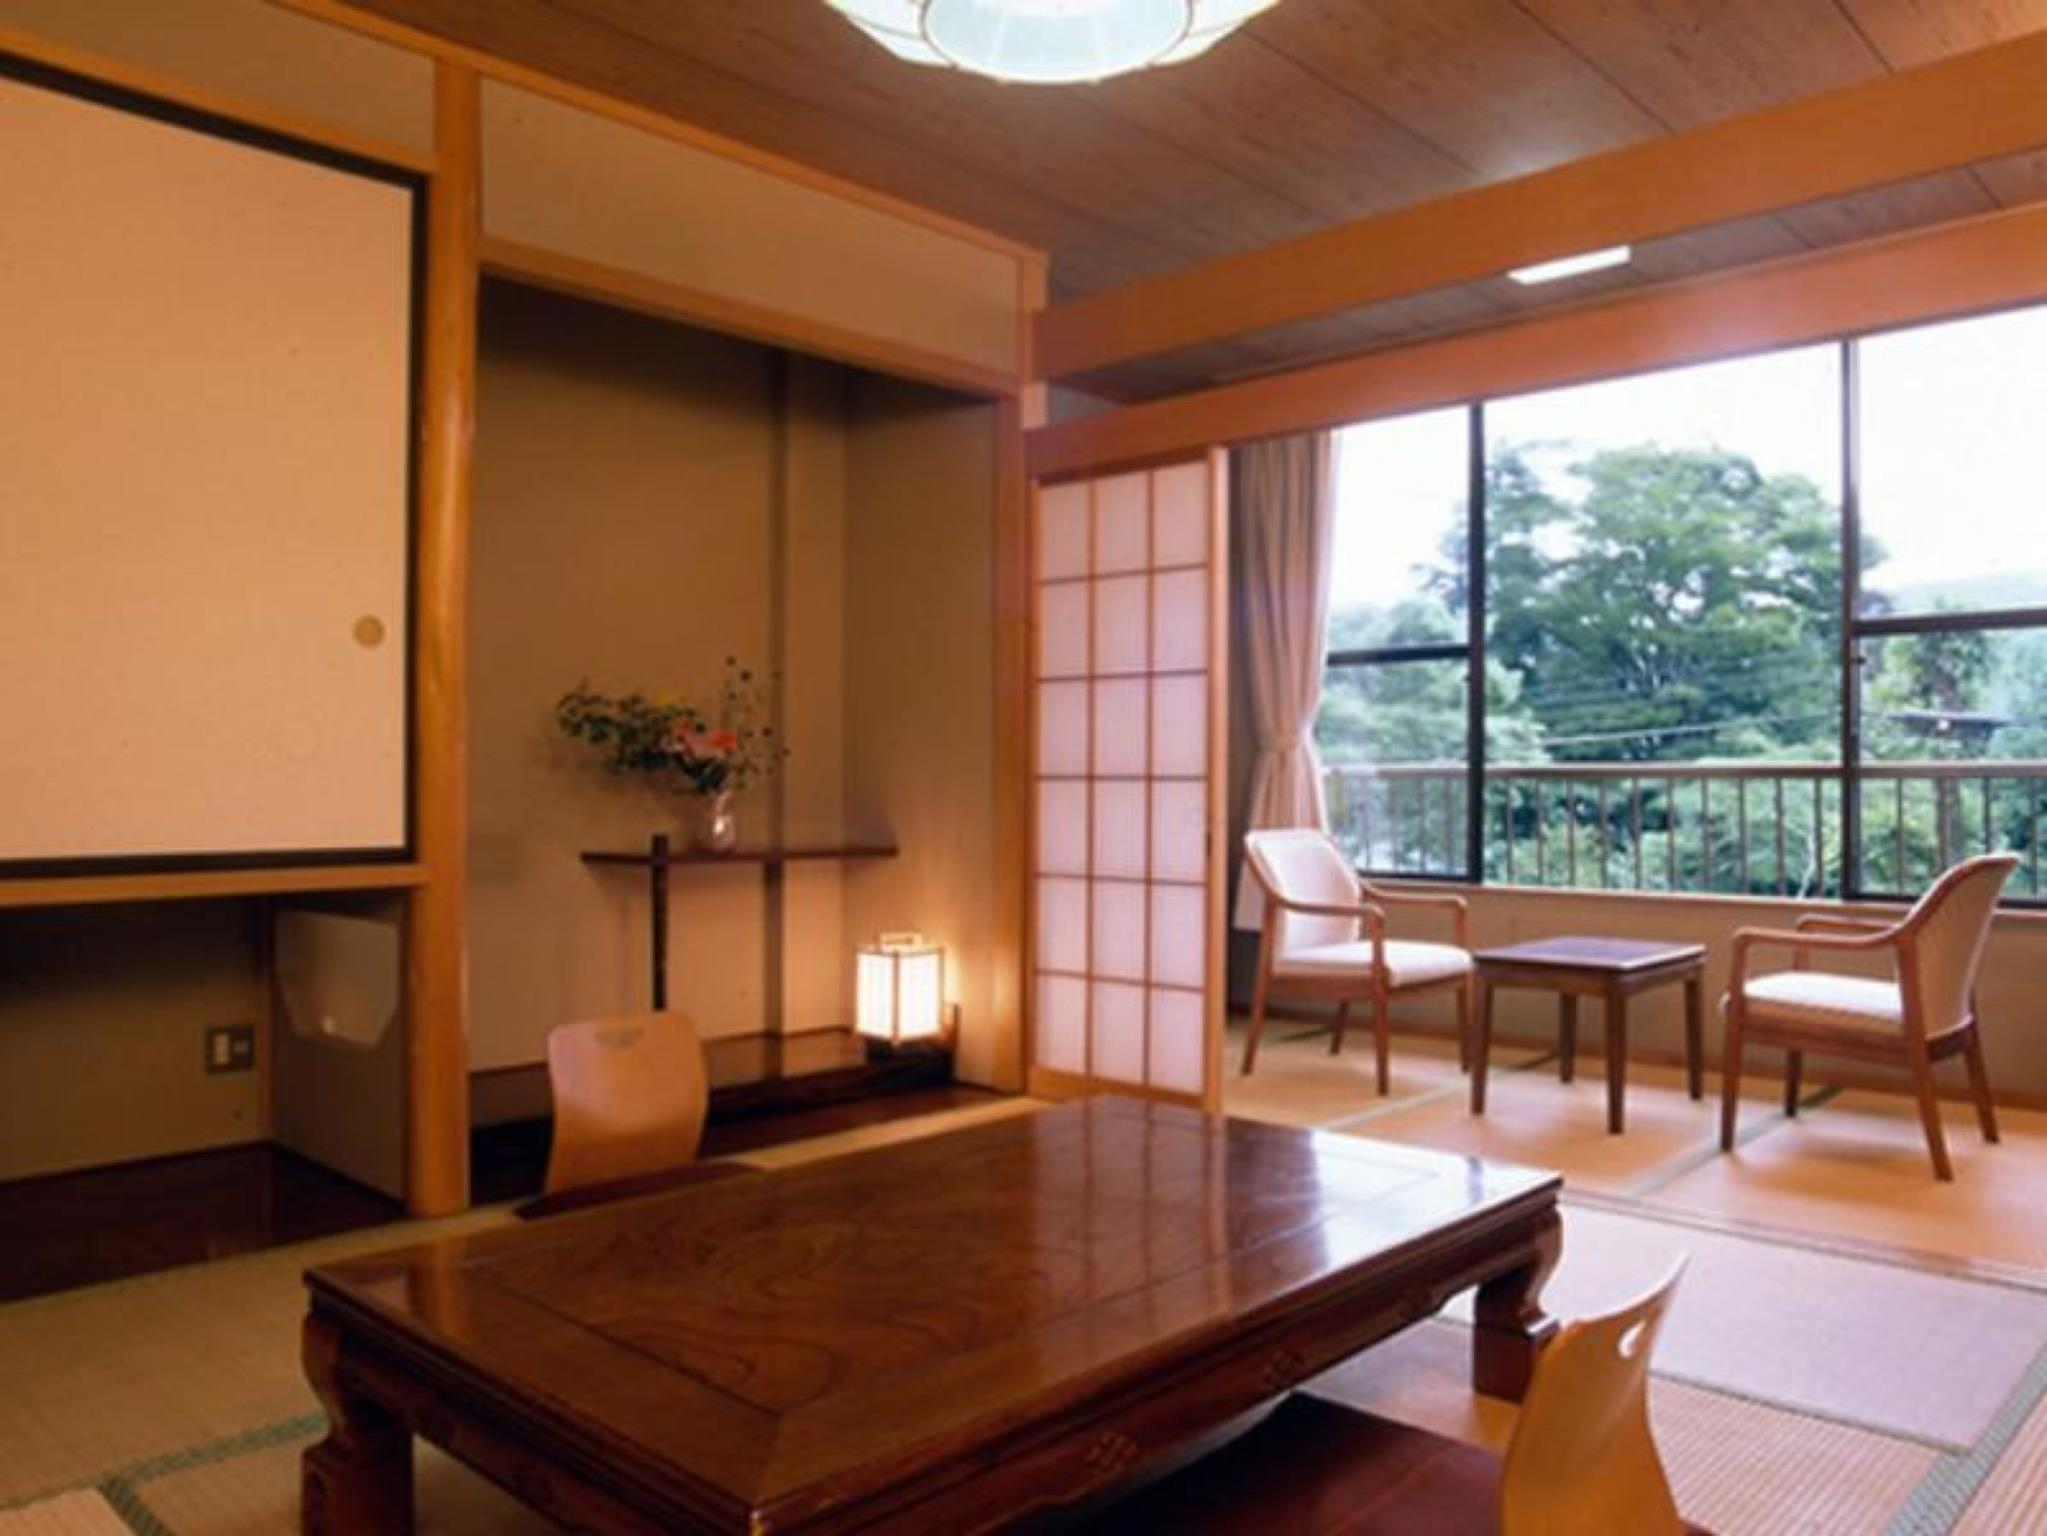 和室(4名・共同バスルーム) (Japanese Style Room for 4 People with Shared Bathroom)